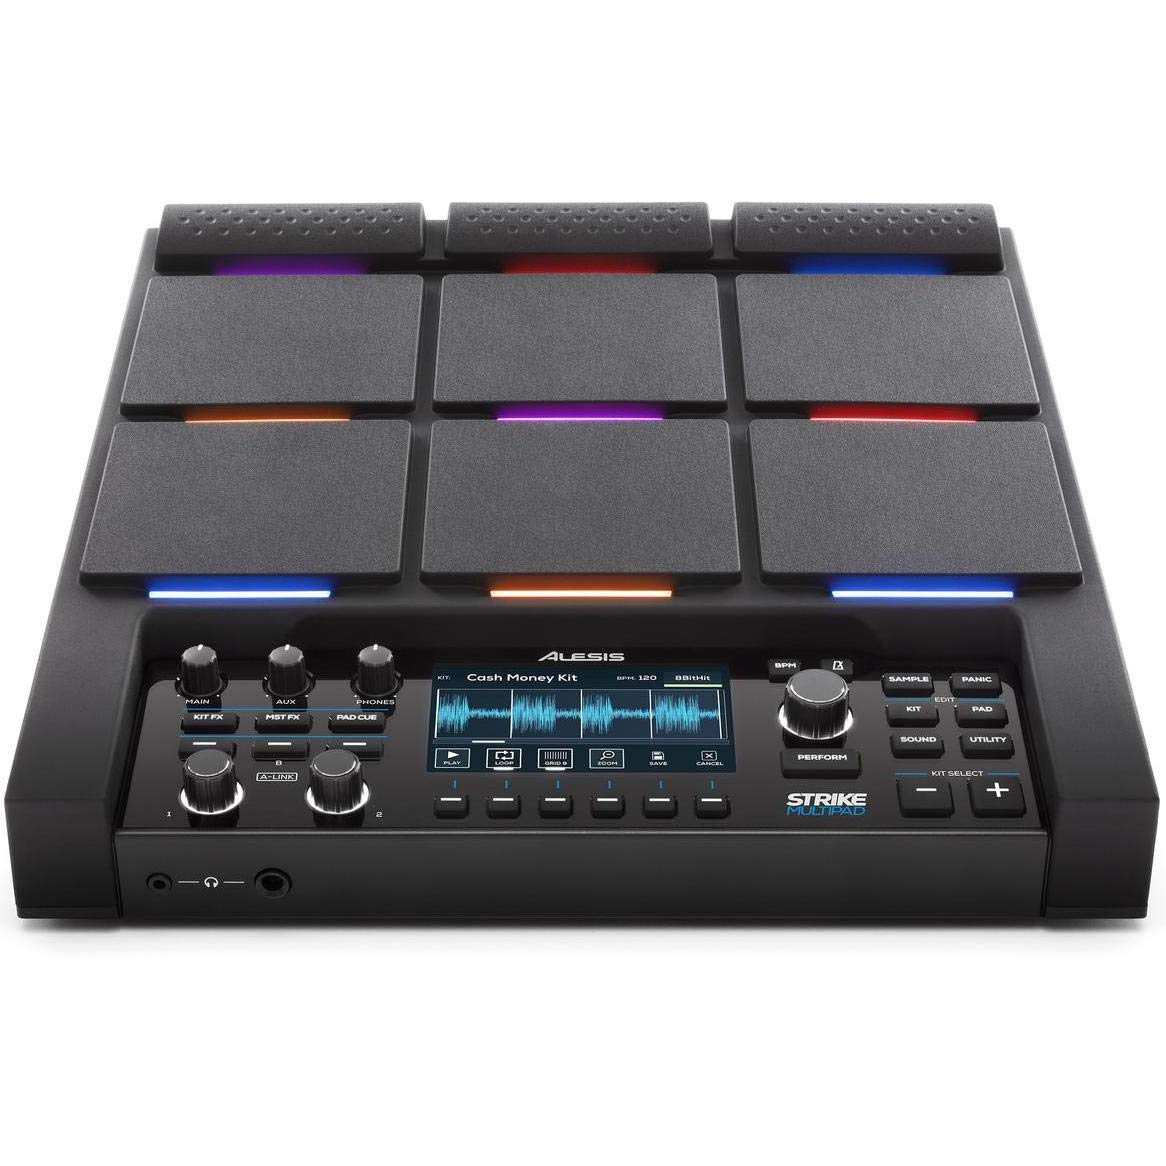 Alesis Strike MultiPad   9-Trigger Percussion Pad with RGB Backlighting, Sampler, Looper, On-Board 2-In/2-Out Soundcard, Sample loading via USB Thumb Drives and Radiant 4.3-Inch Display